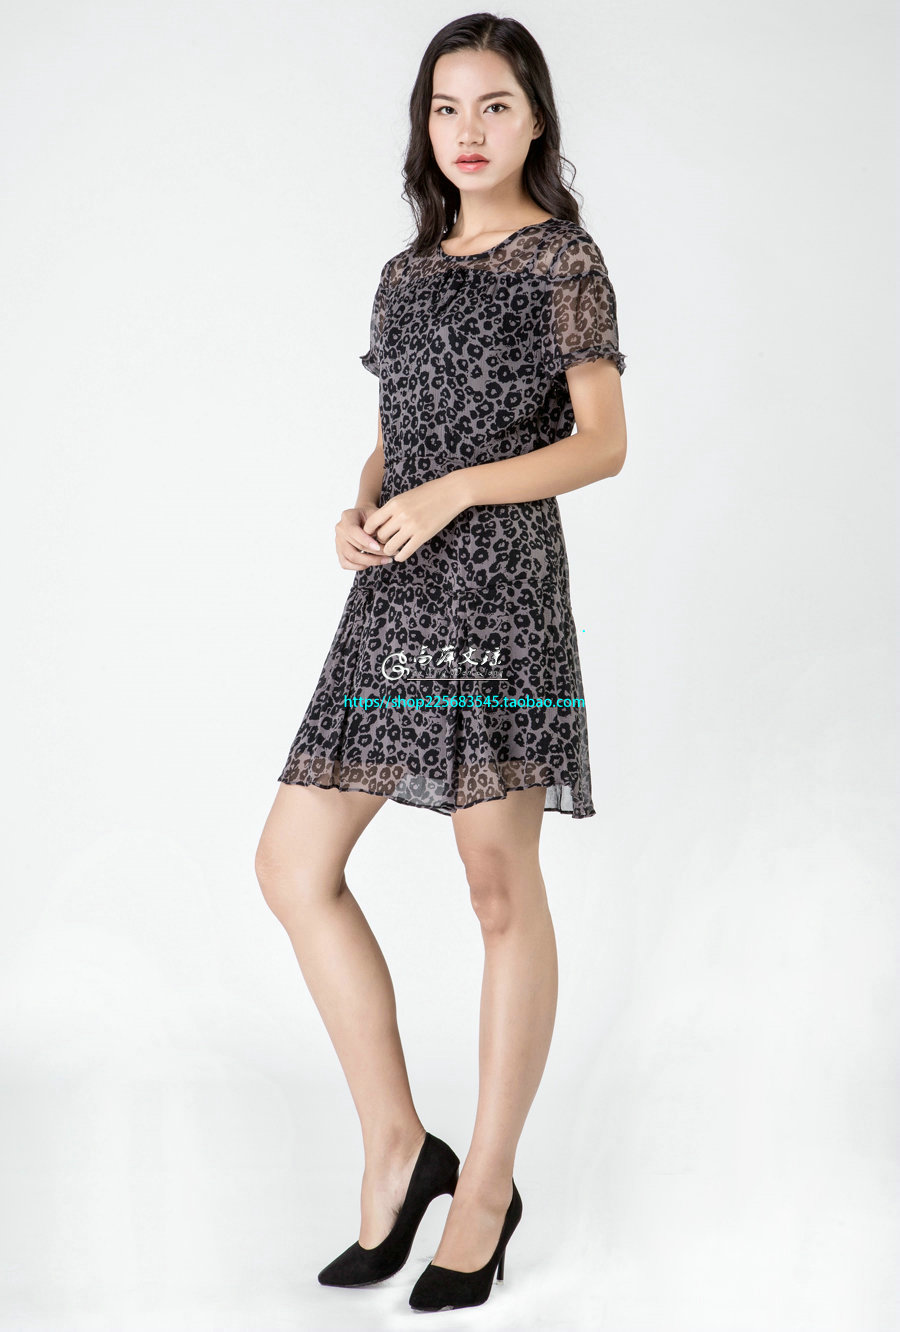 Gaoping Wenqiong  G1626 women silk round neck short sleeve dress